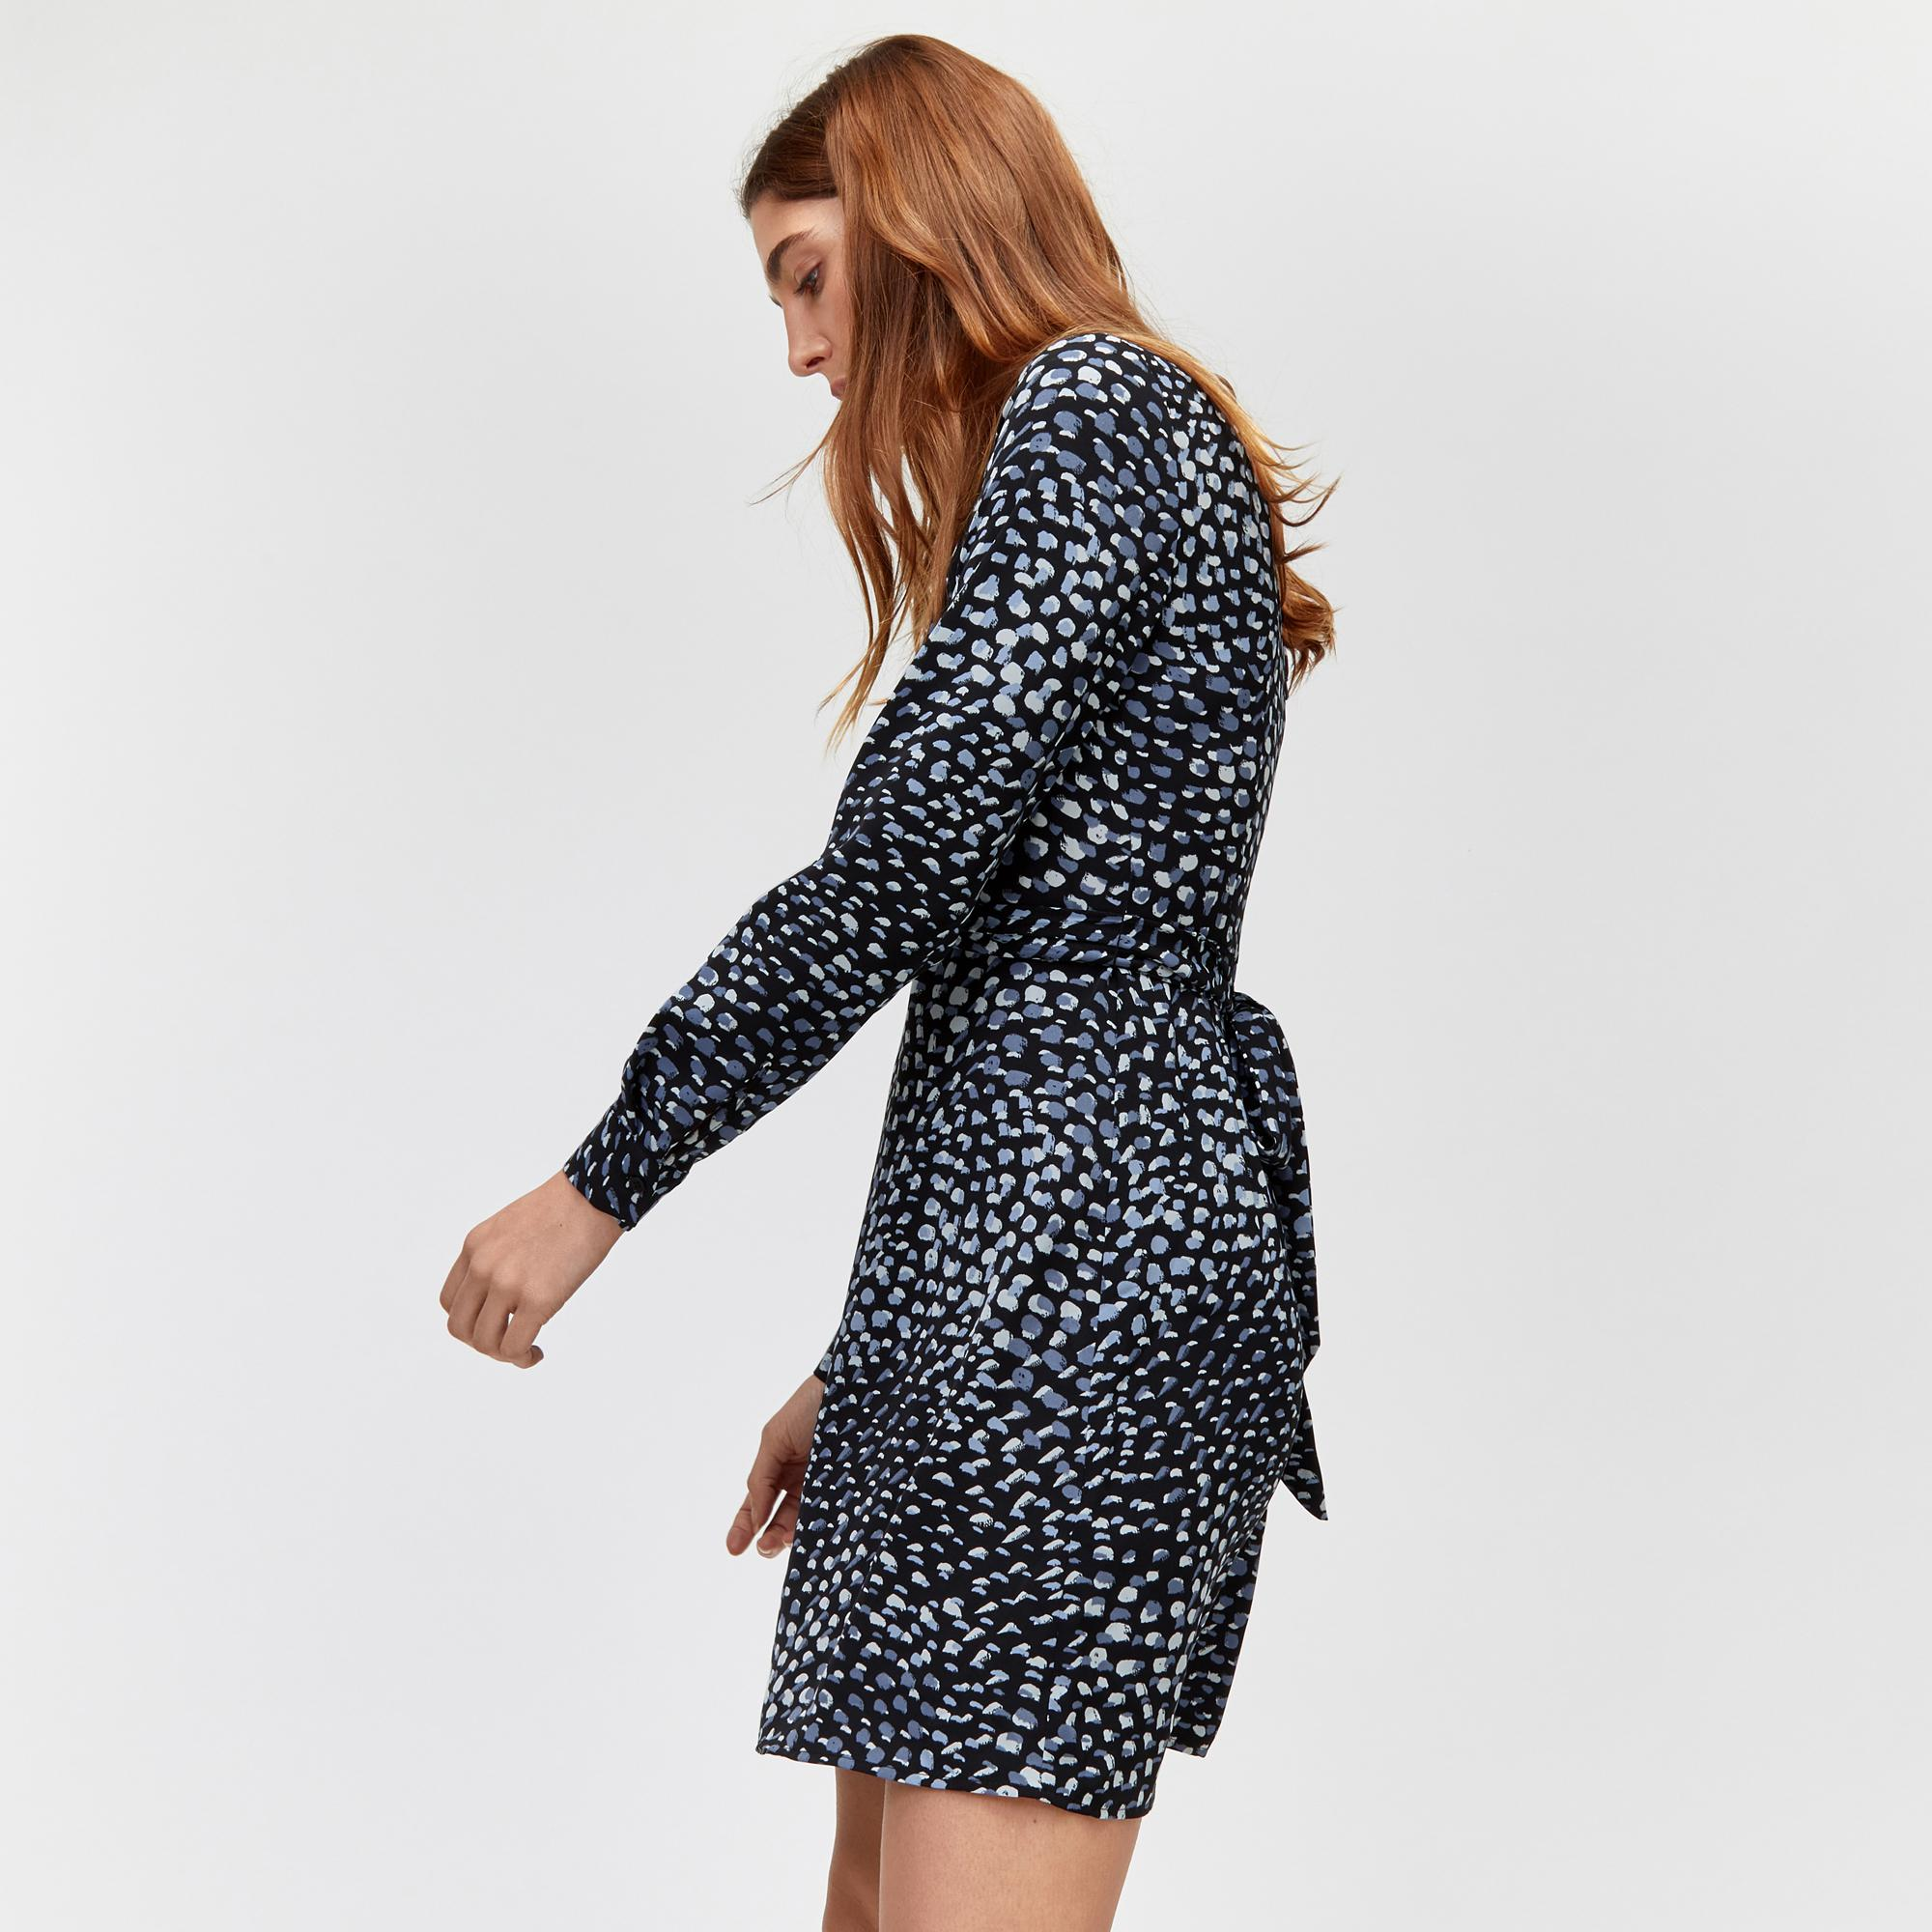 a23d820351 Warehouse Brushed Animal Print Dress in Blue - Save 35% - Lyst